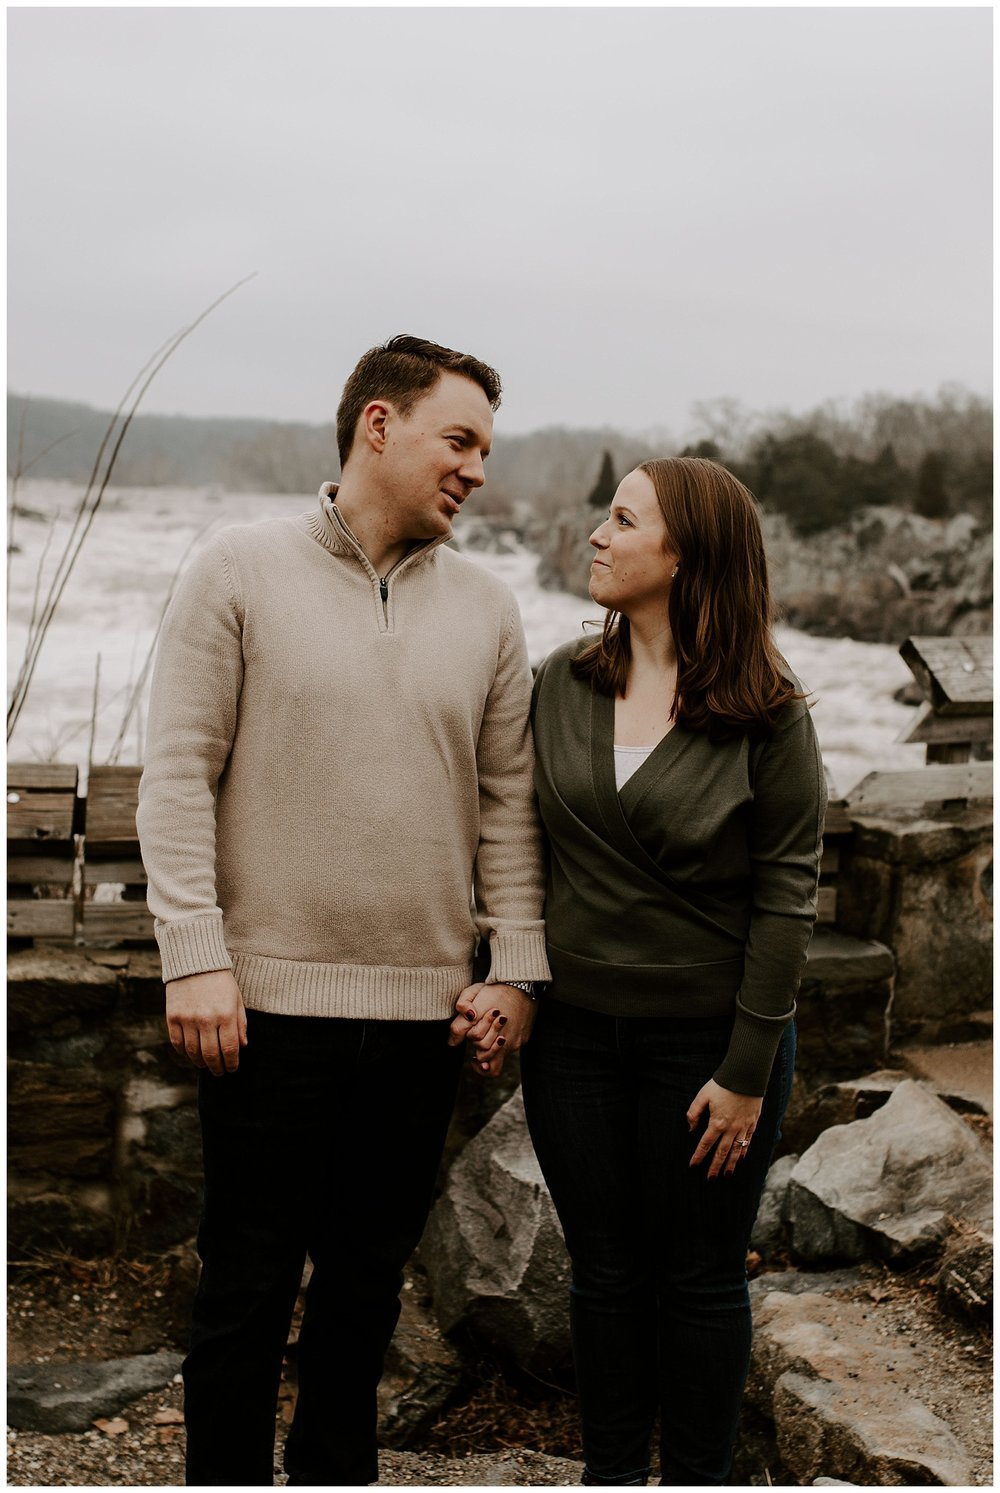 Elizabeth M Photography Norther Virginia Wedding Photographer Lindsey and Peter Engagement Session_0064.jpg